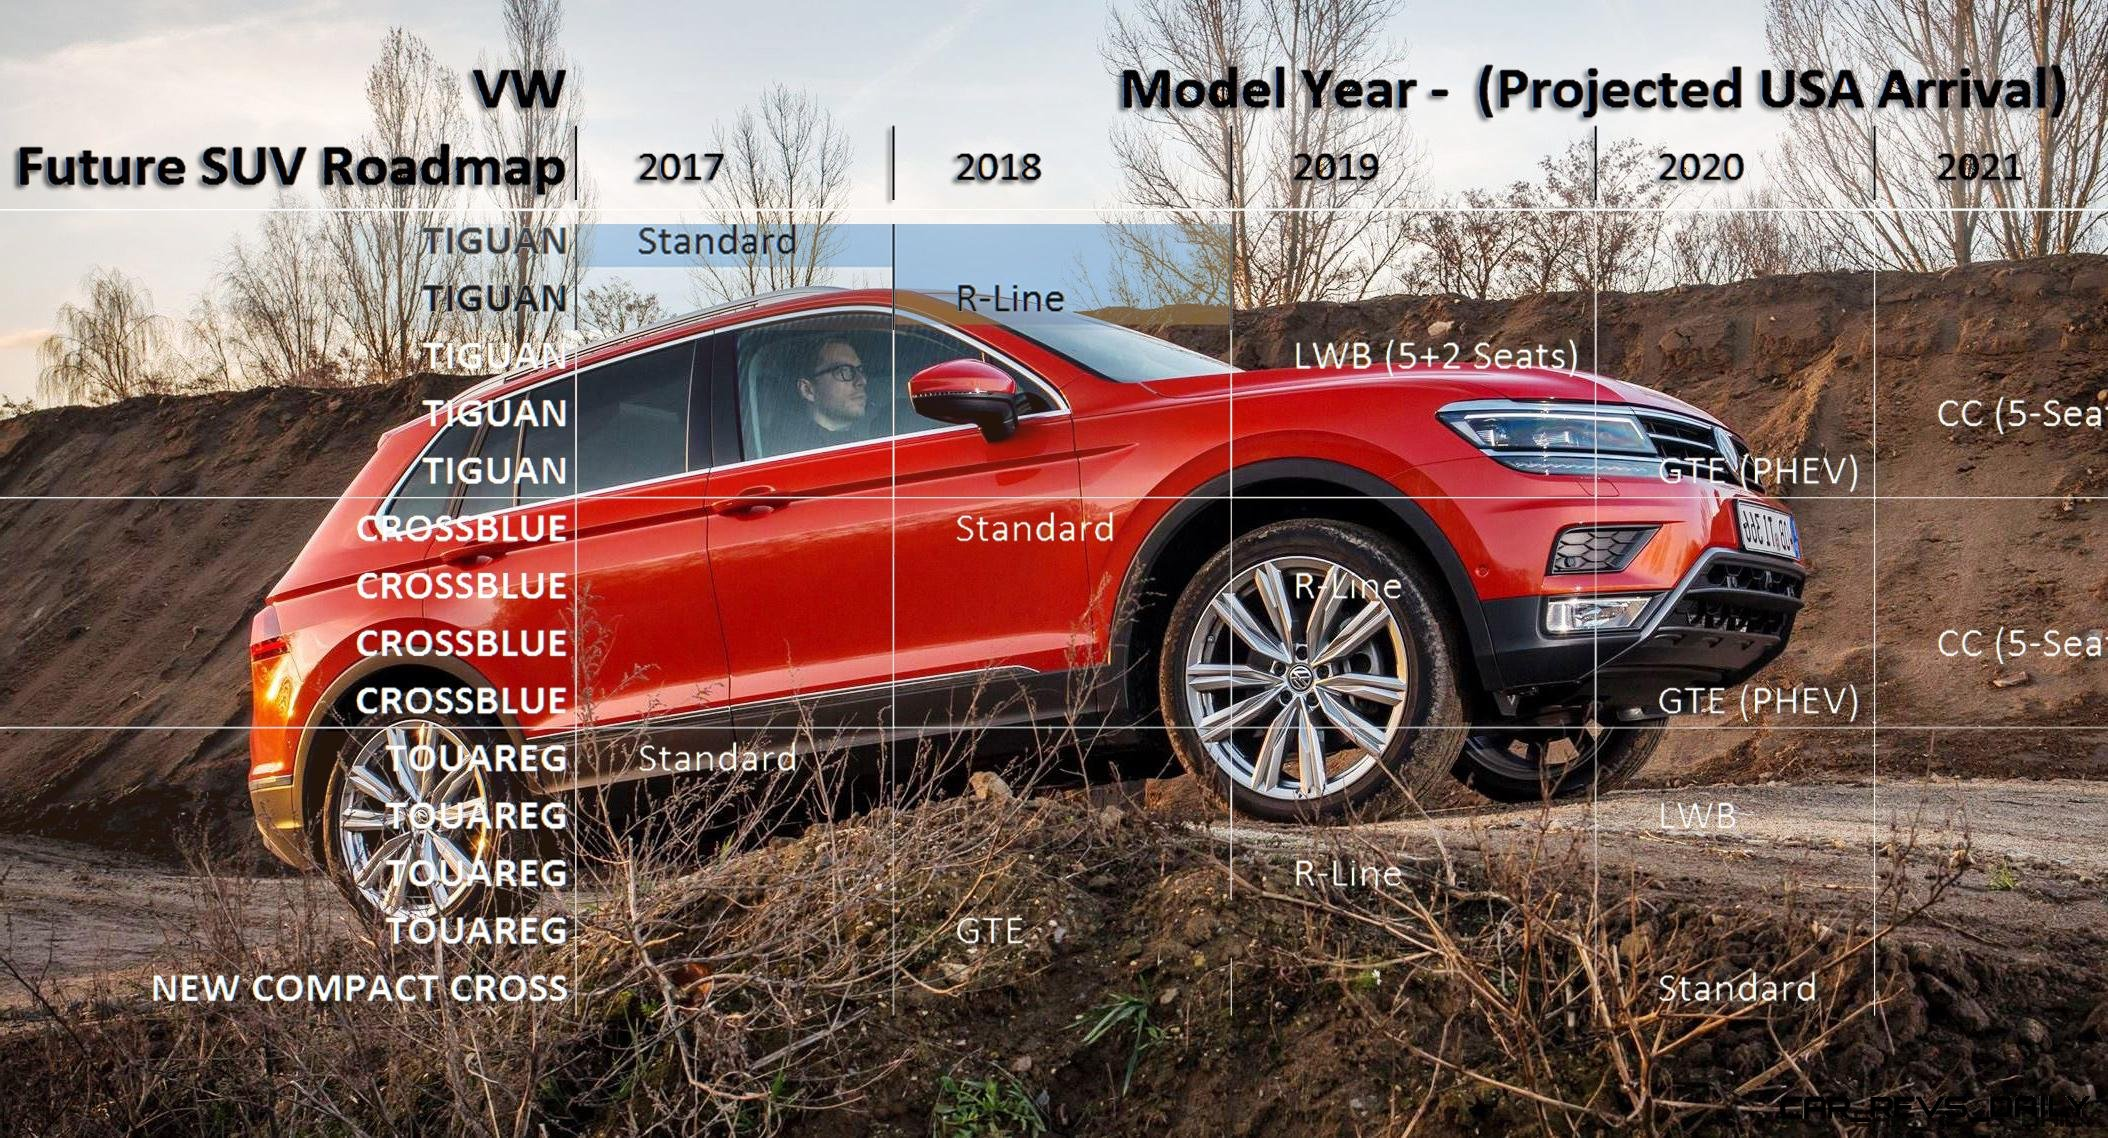 Future VW USA SUV Roadmap Projects 15 Variants by 2021